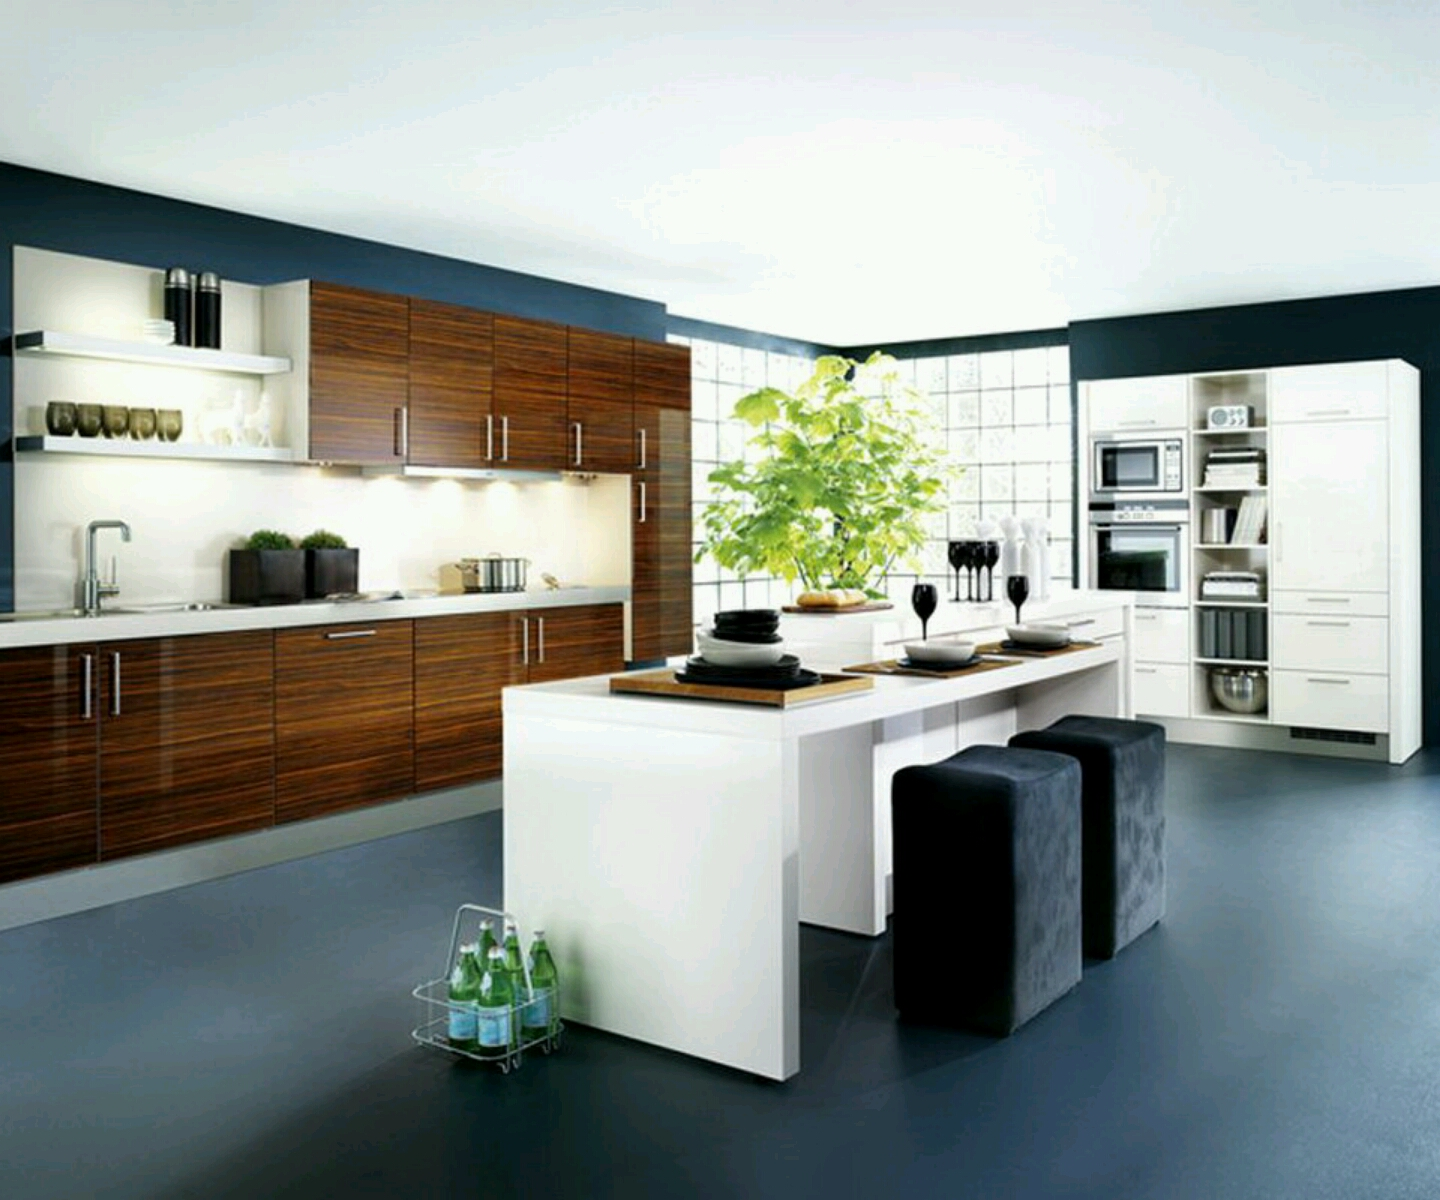 New House Kitchen Designs: New Home Designs Latest.: Kitchen Cabinets Designs Modern Homes